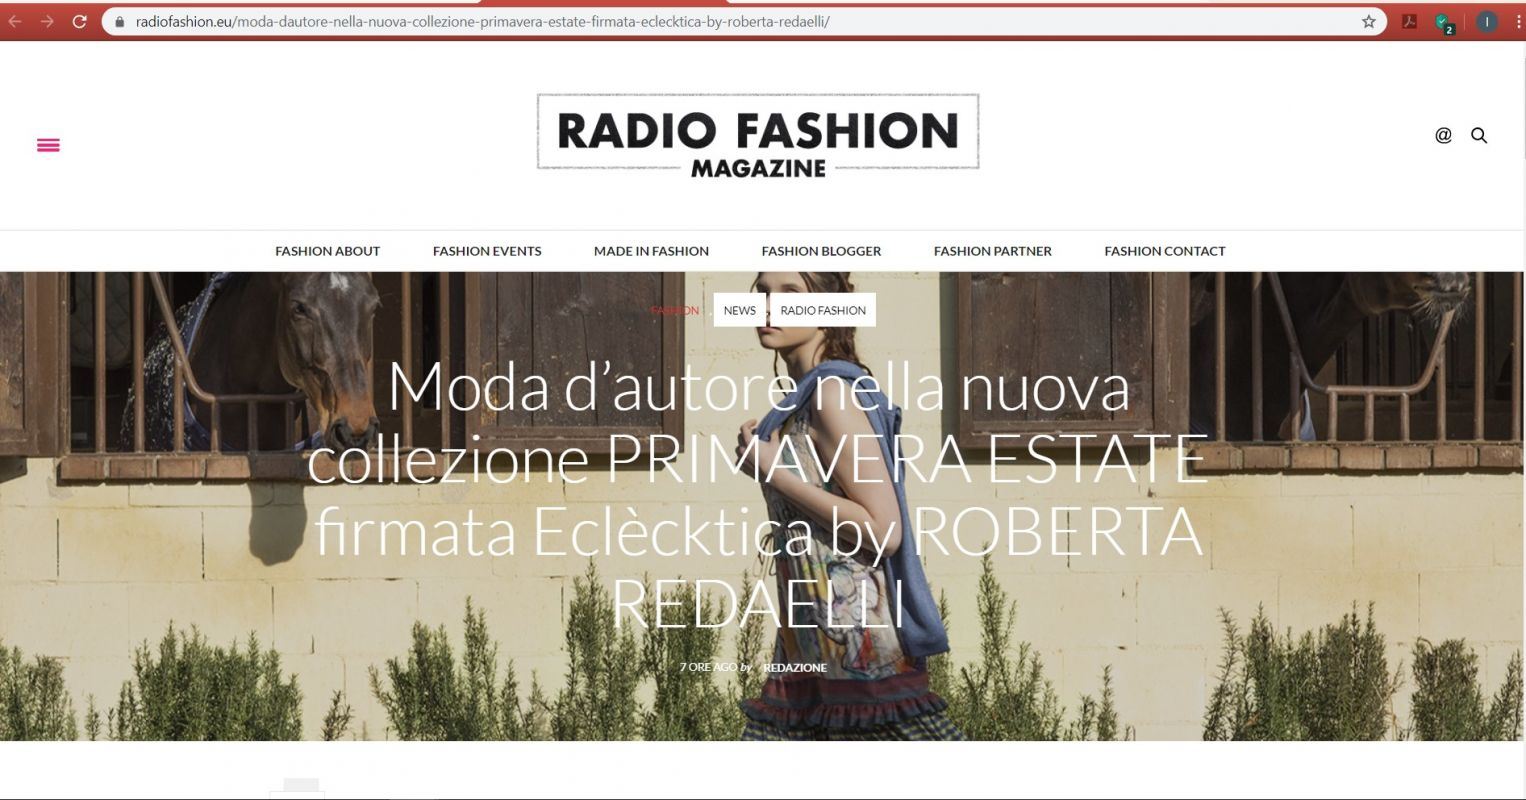 Radio Fashion Magazine 23th march 2020 roberta redaelli massimiliano miazzo spring summer 2020 spirito libero